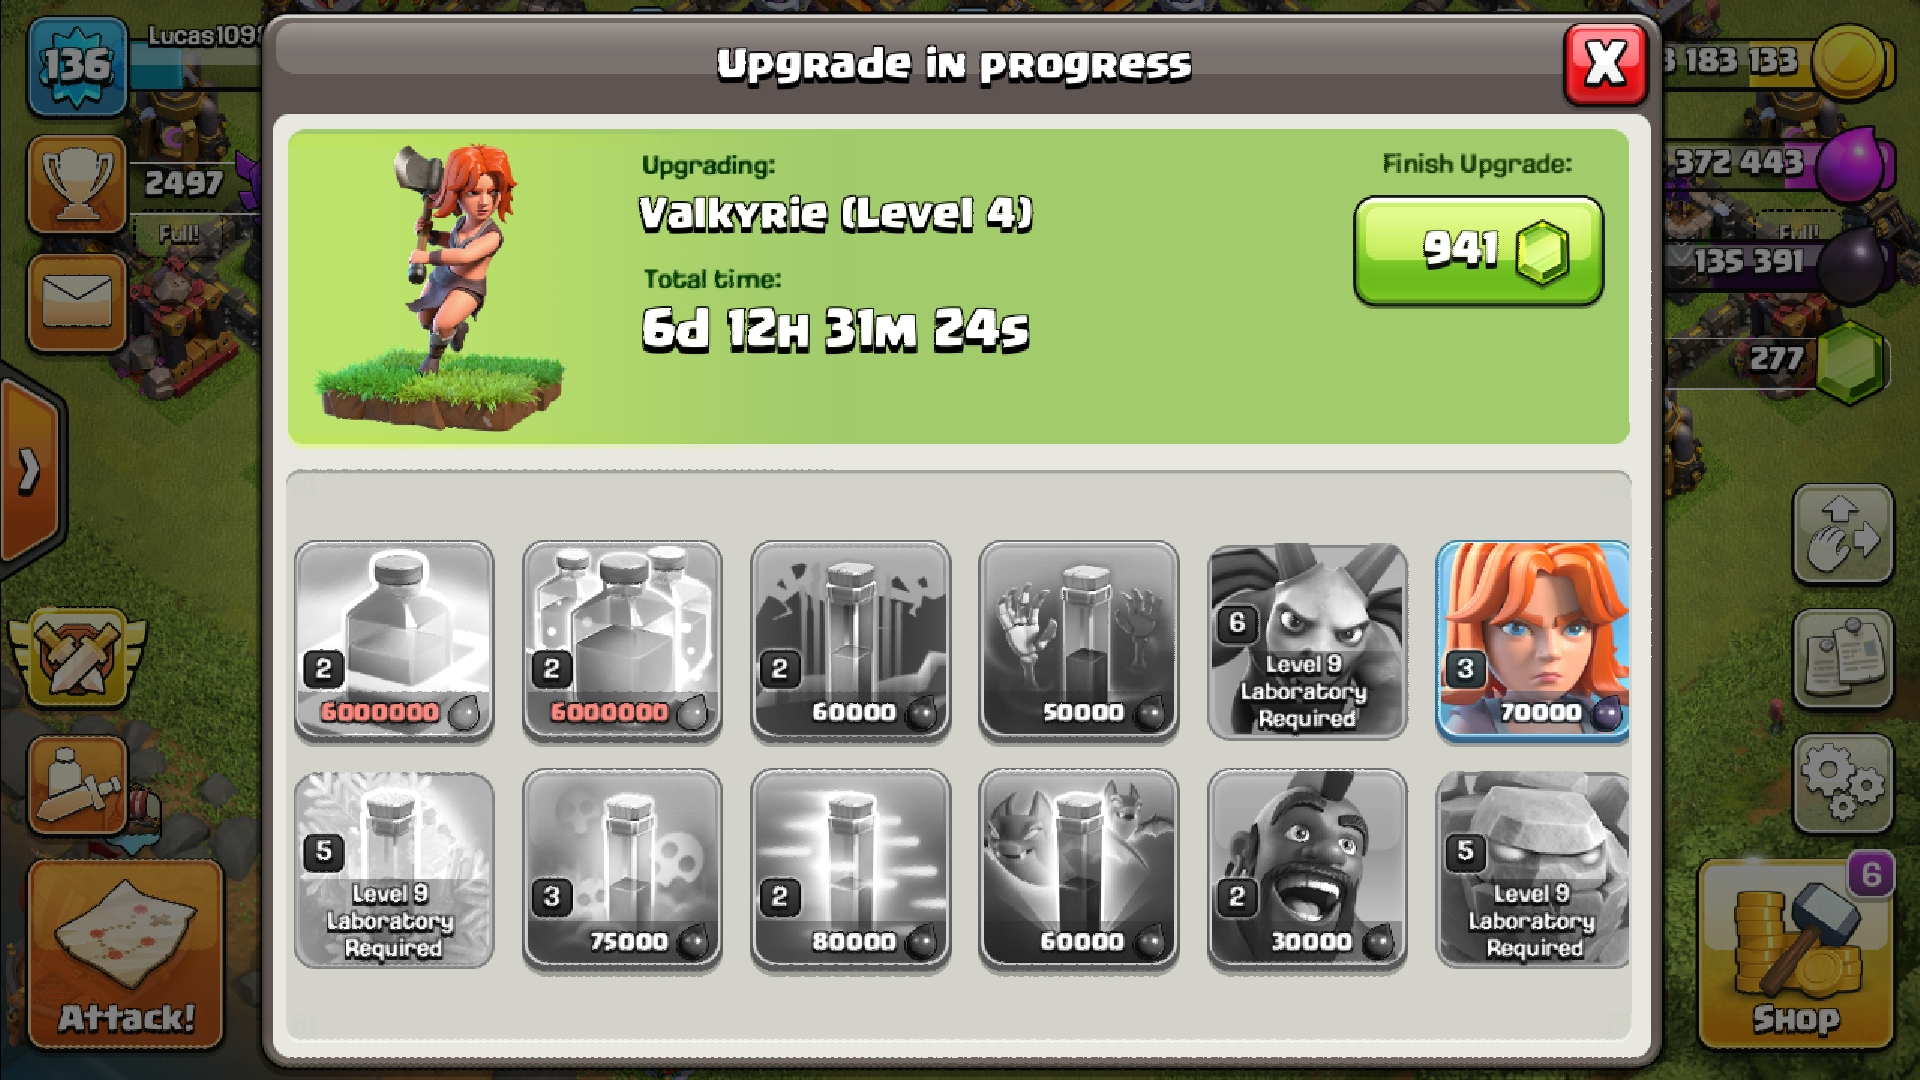 What should I be focusing on upgrading? (Ignore my level 2 Hog rider pls) xd